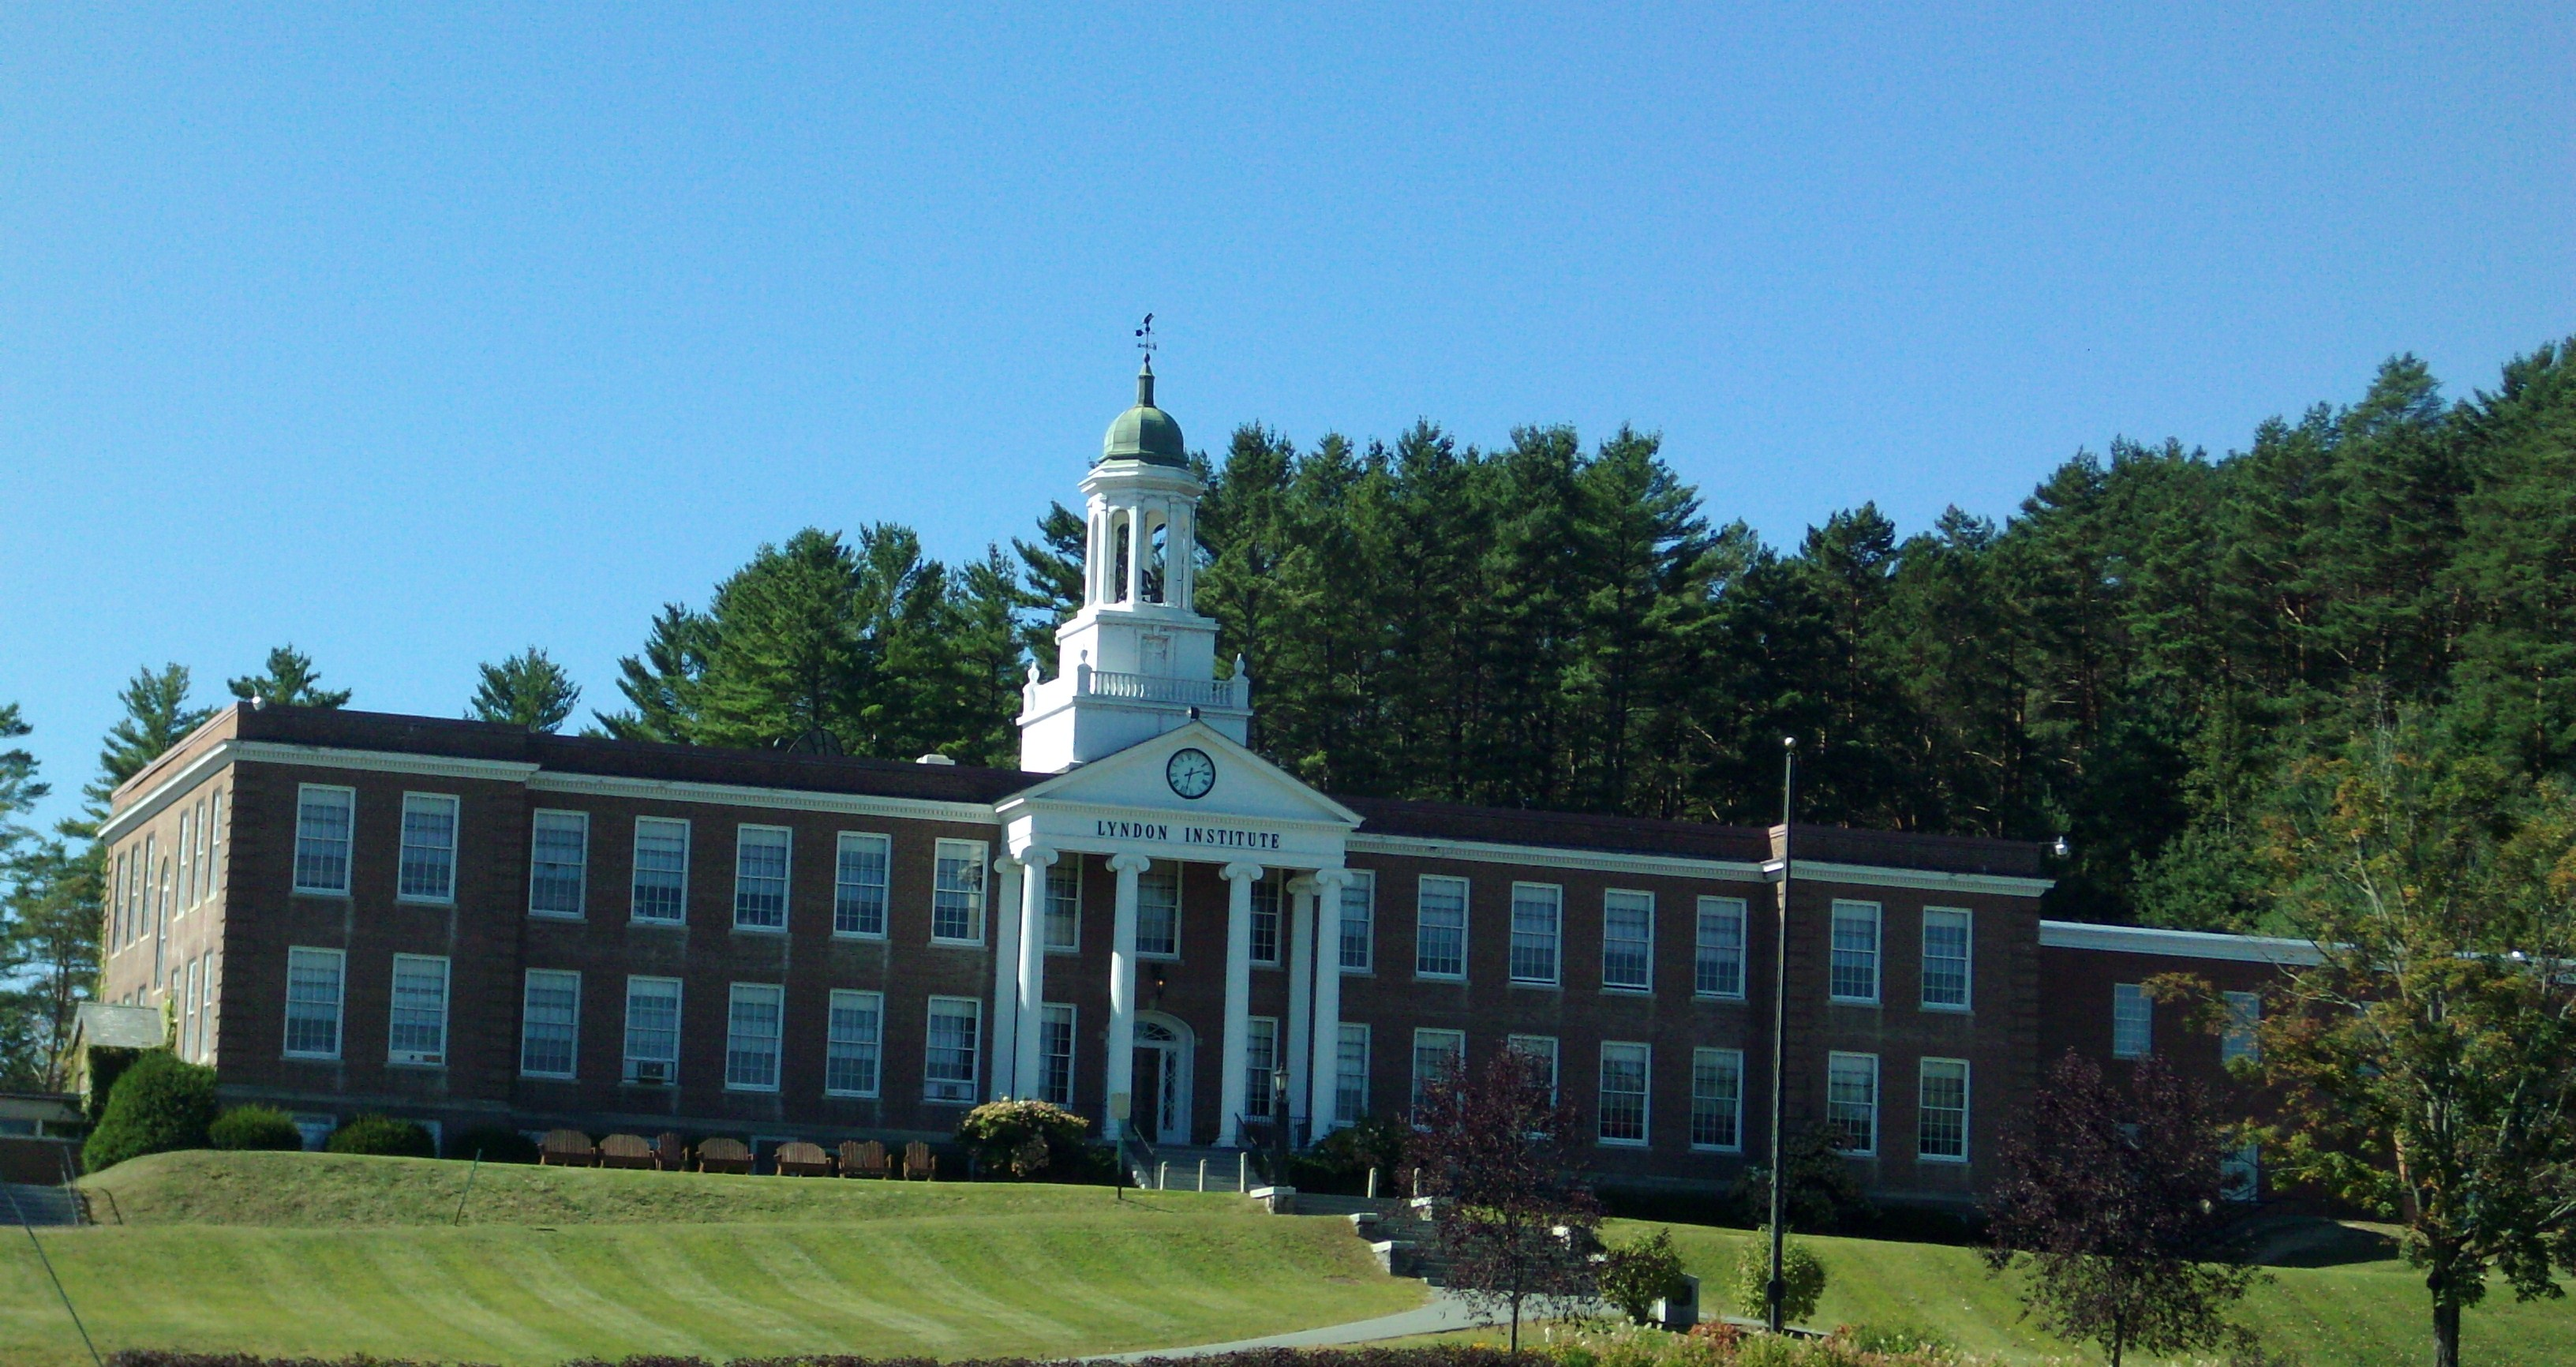 The Lyndon Institute, a high school in Lyndon, Vermont